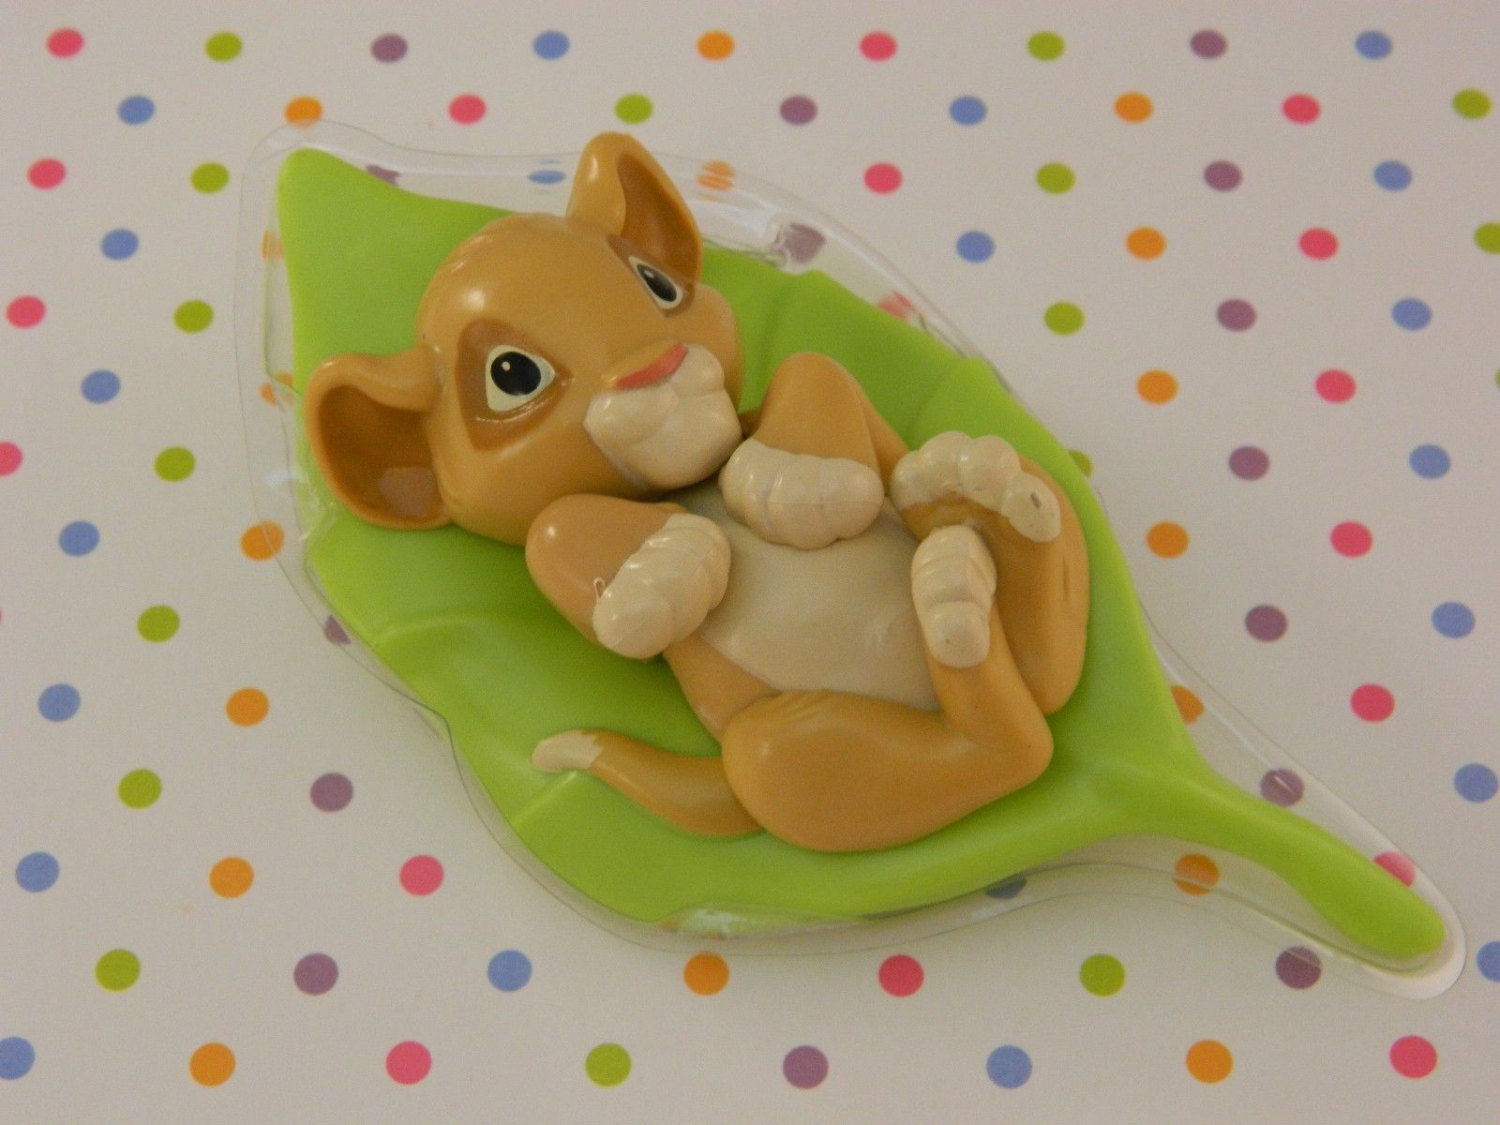 Lion King Baby Cake Decorations